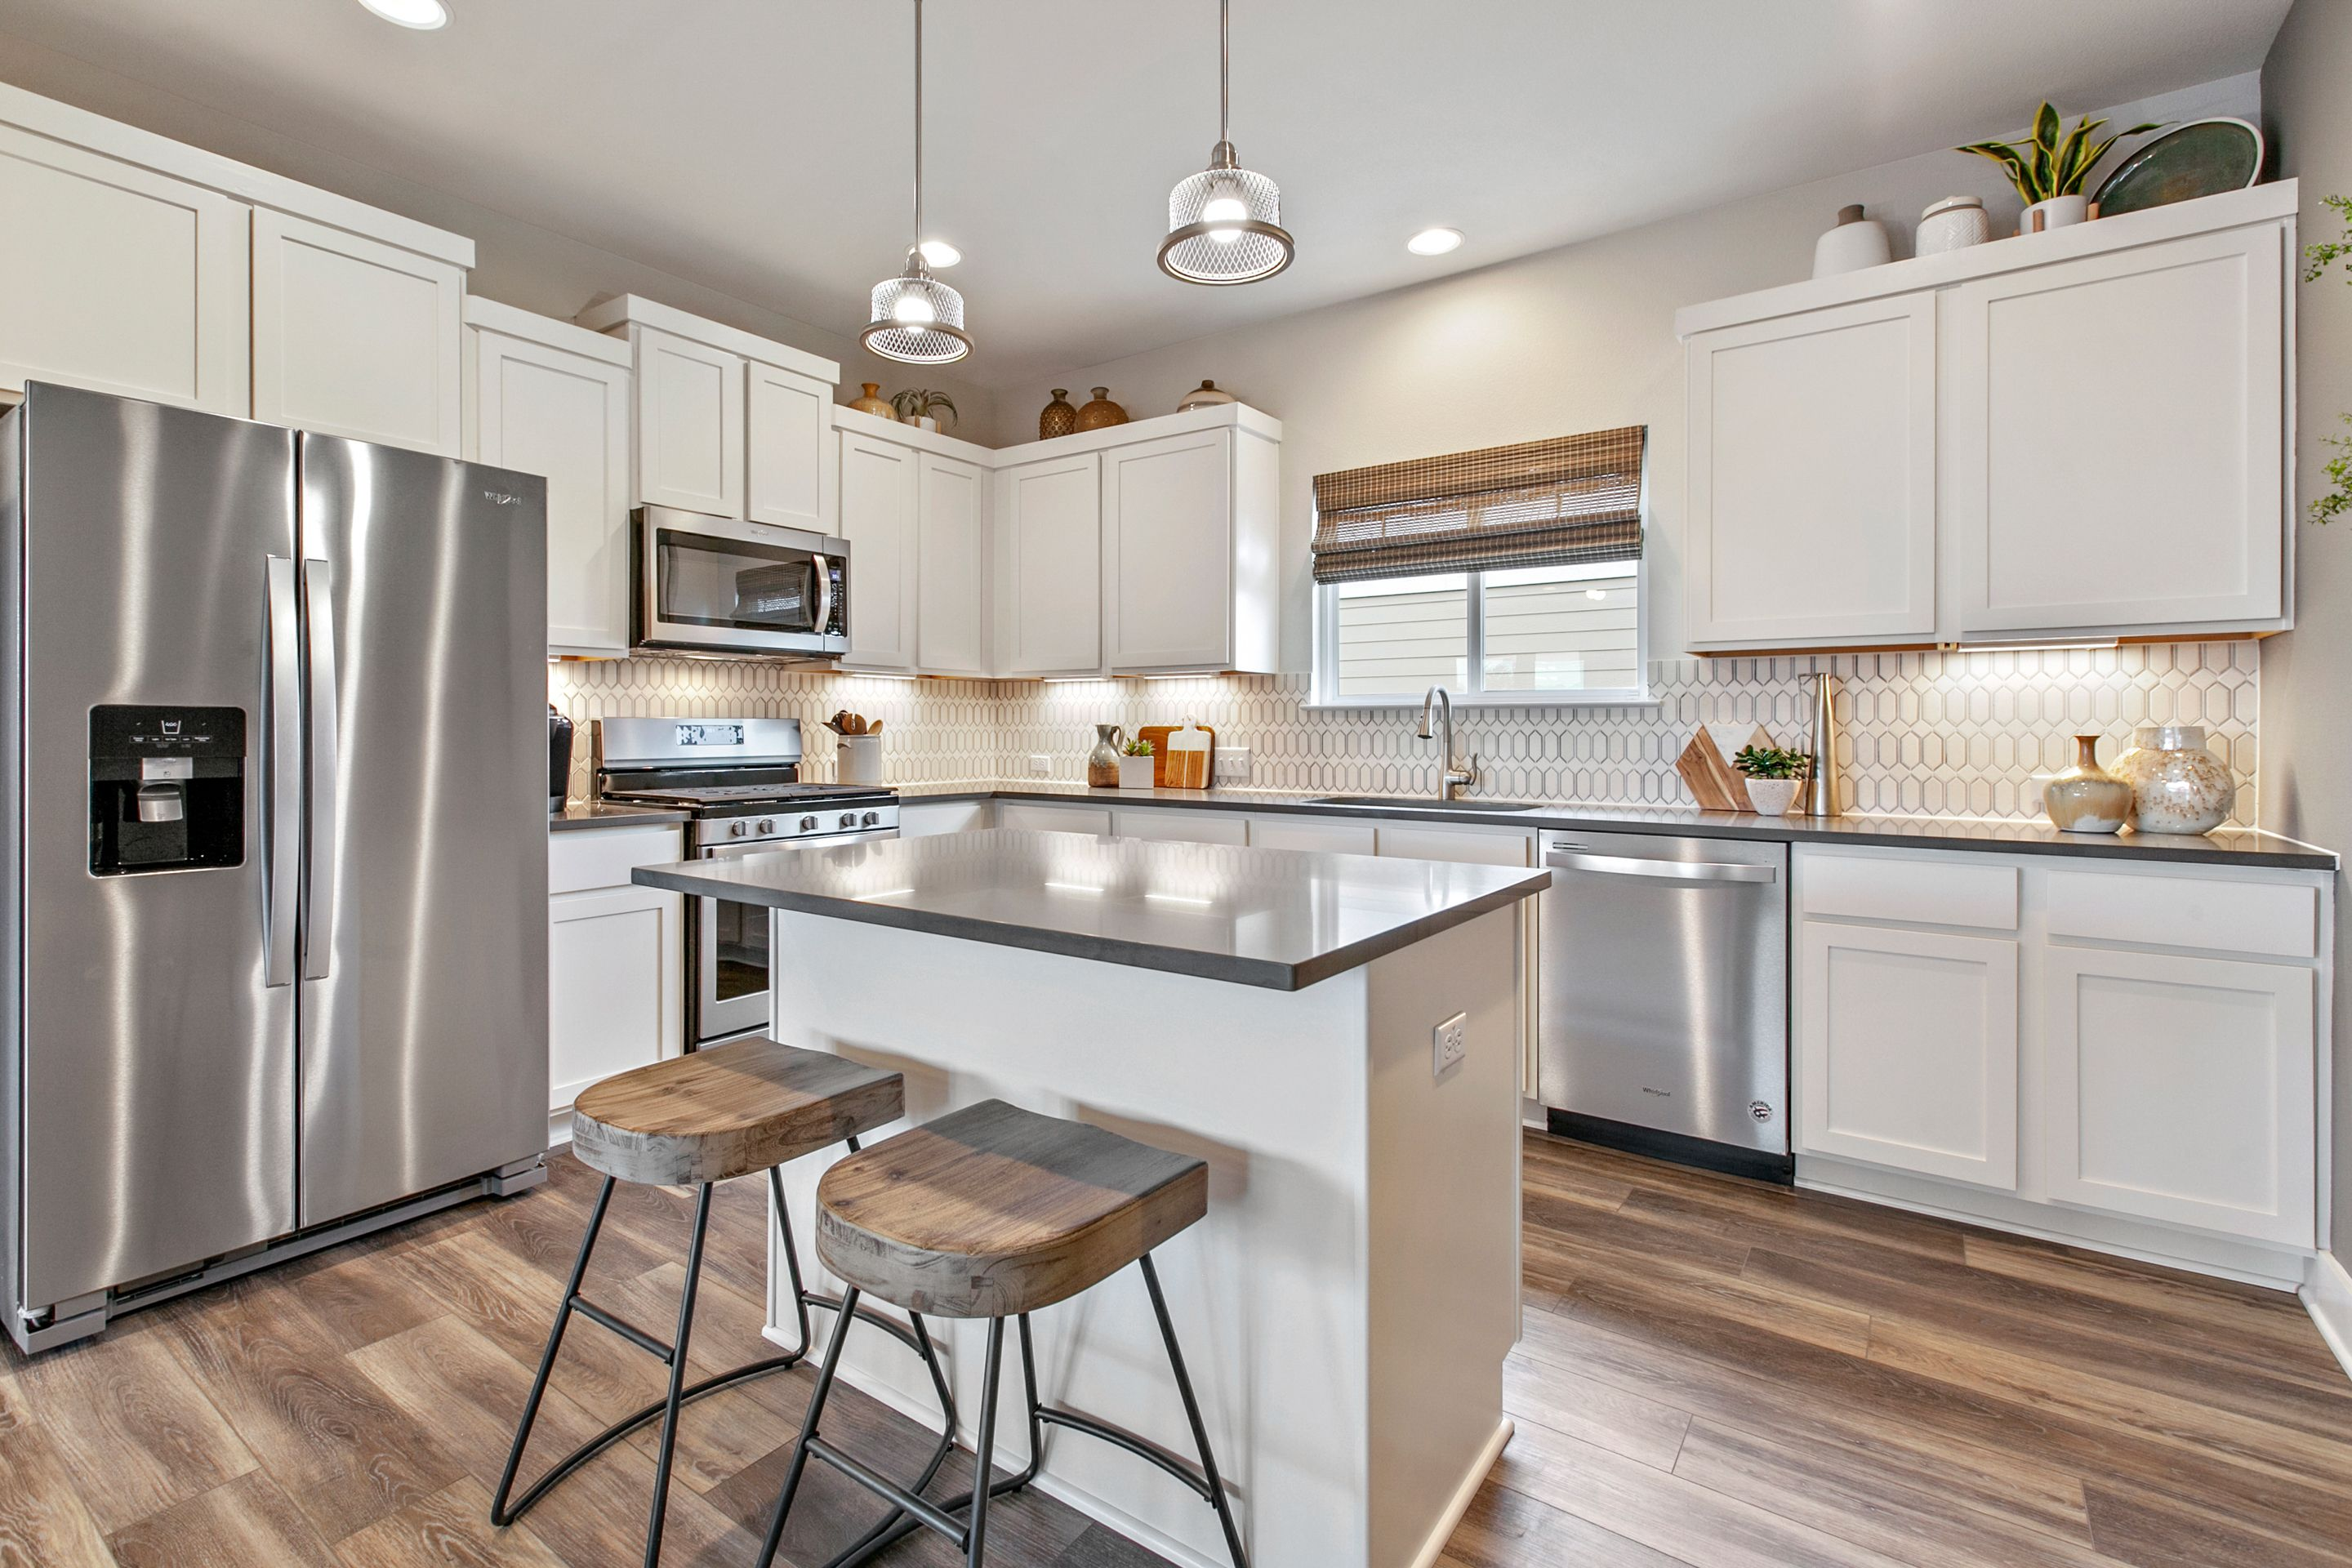 We love the neutral tones and textures of this kitchen at ...